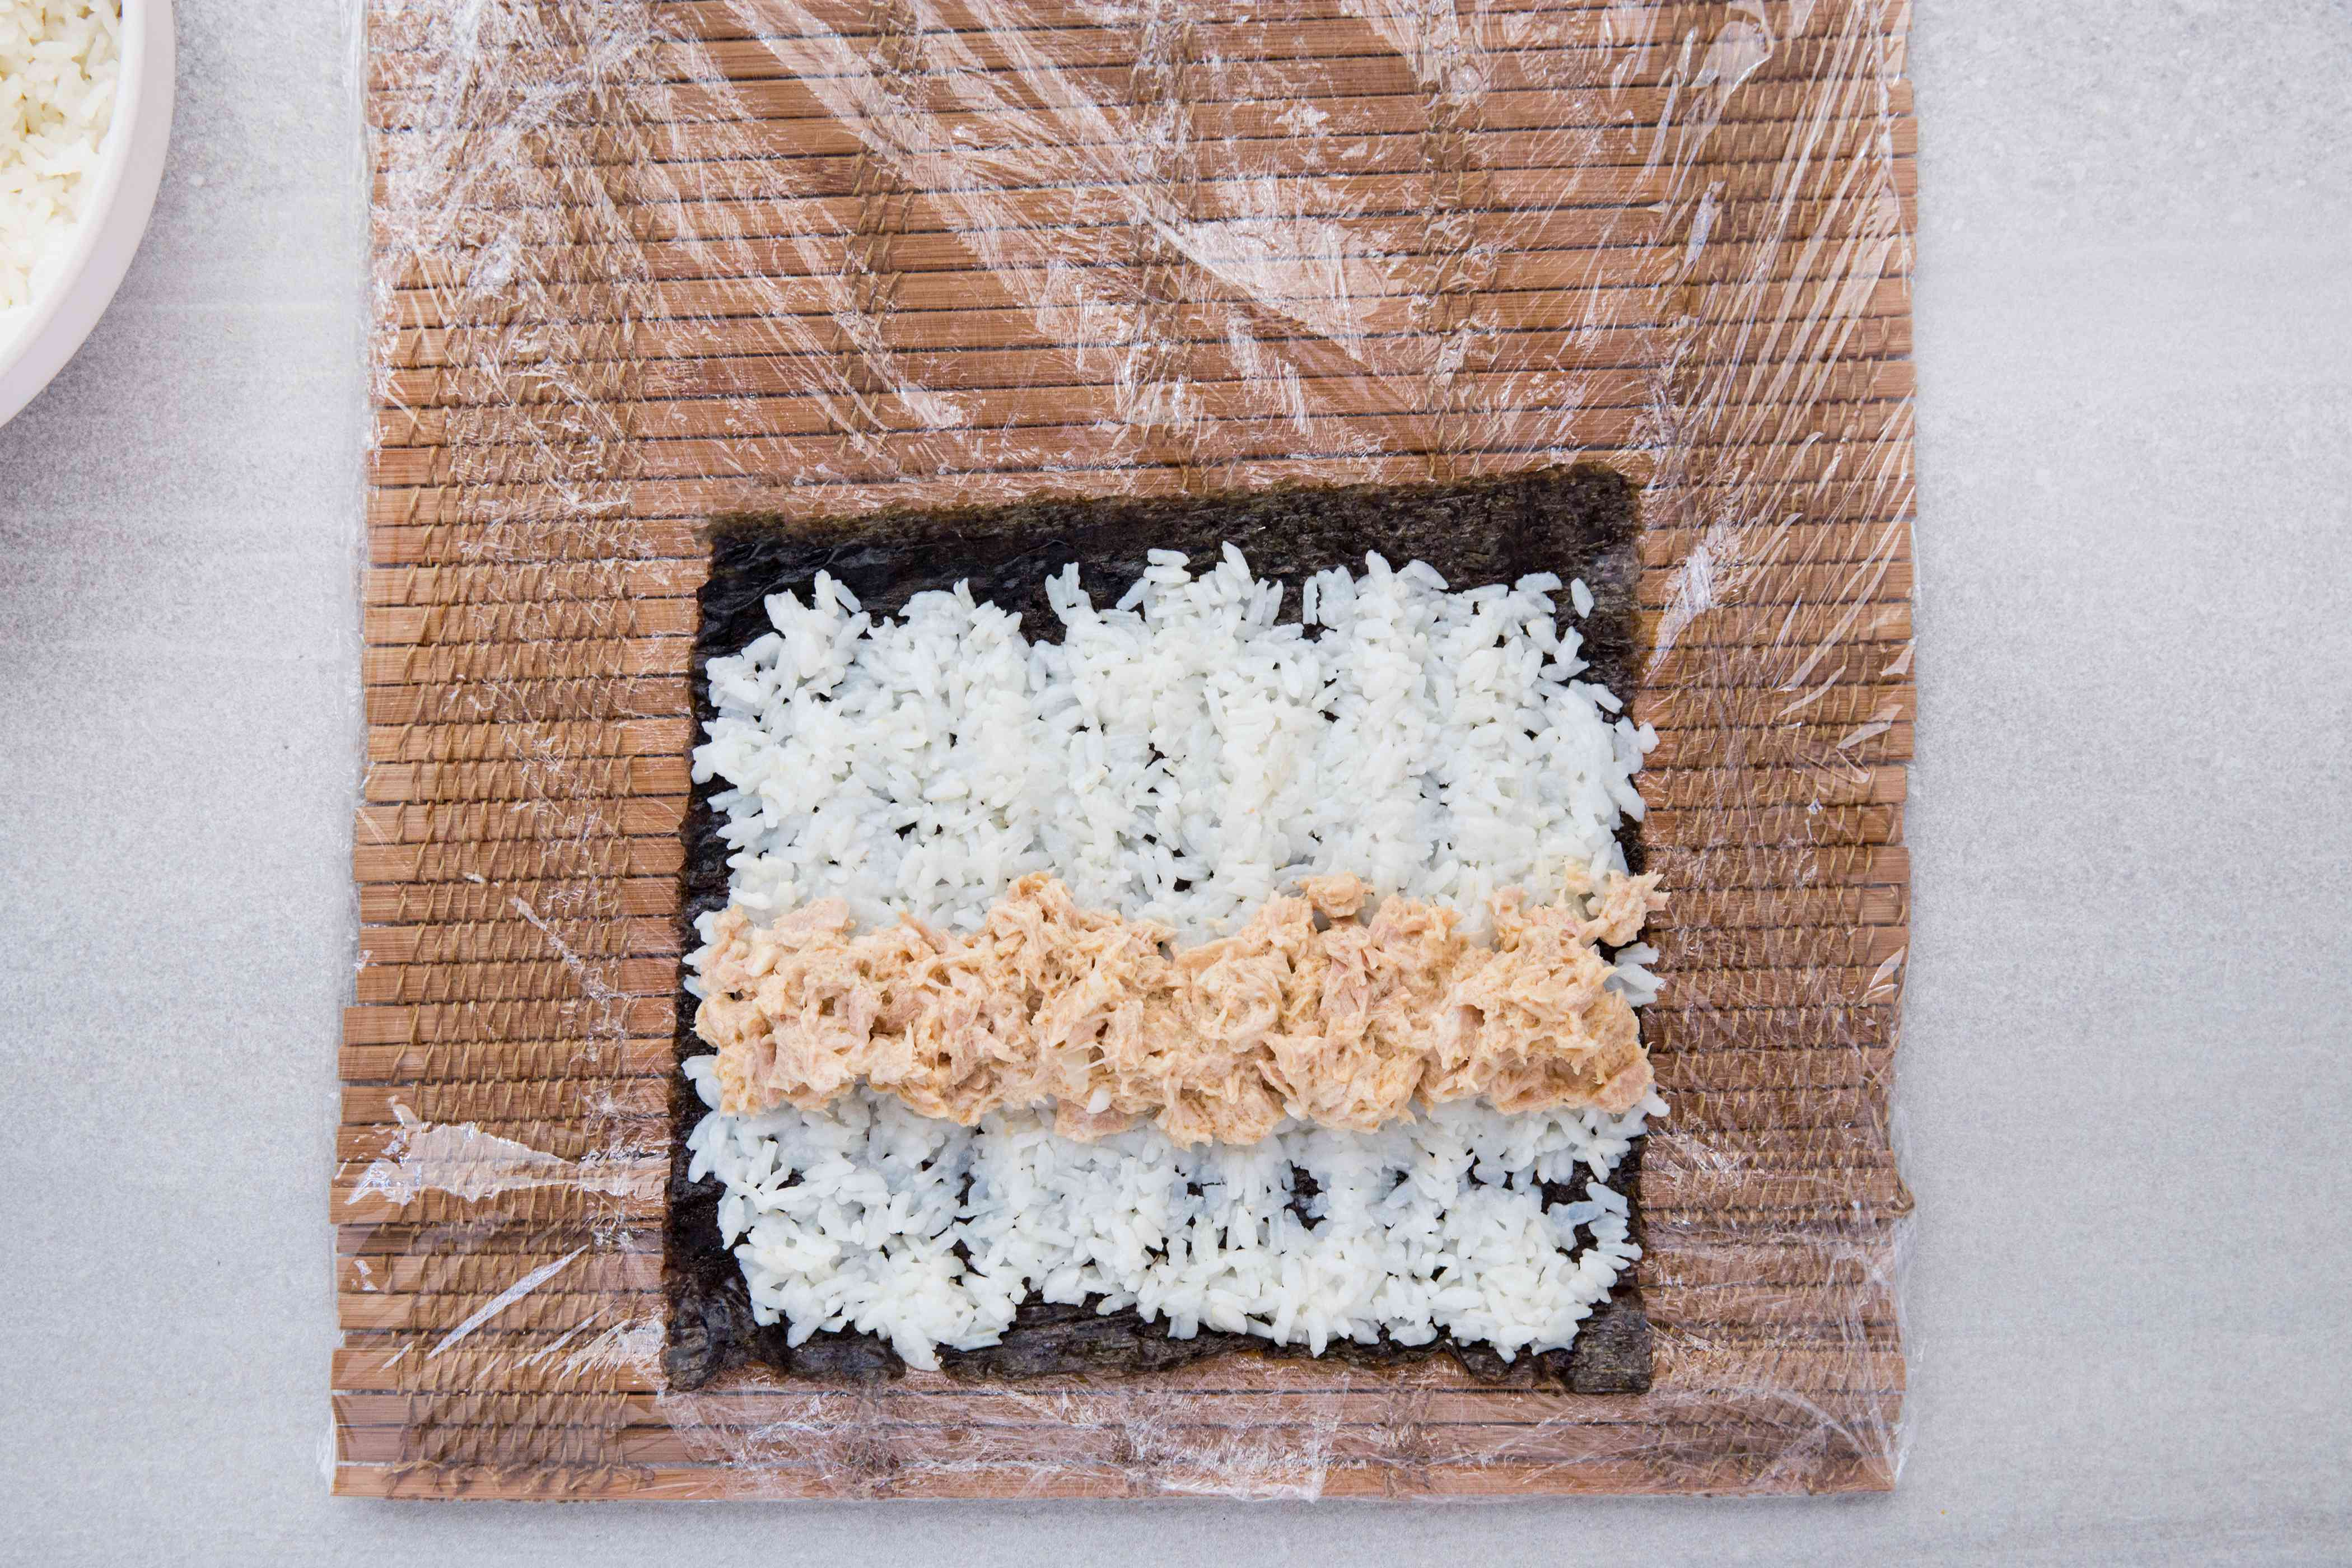 bamboo mat with plastic wrap, with seaweed, rice and tuna salad on top